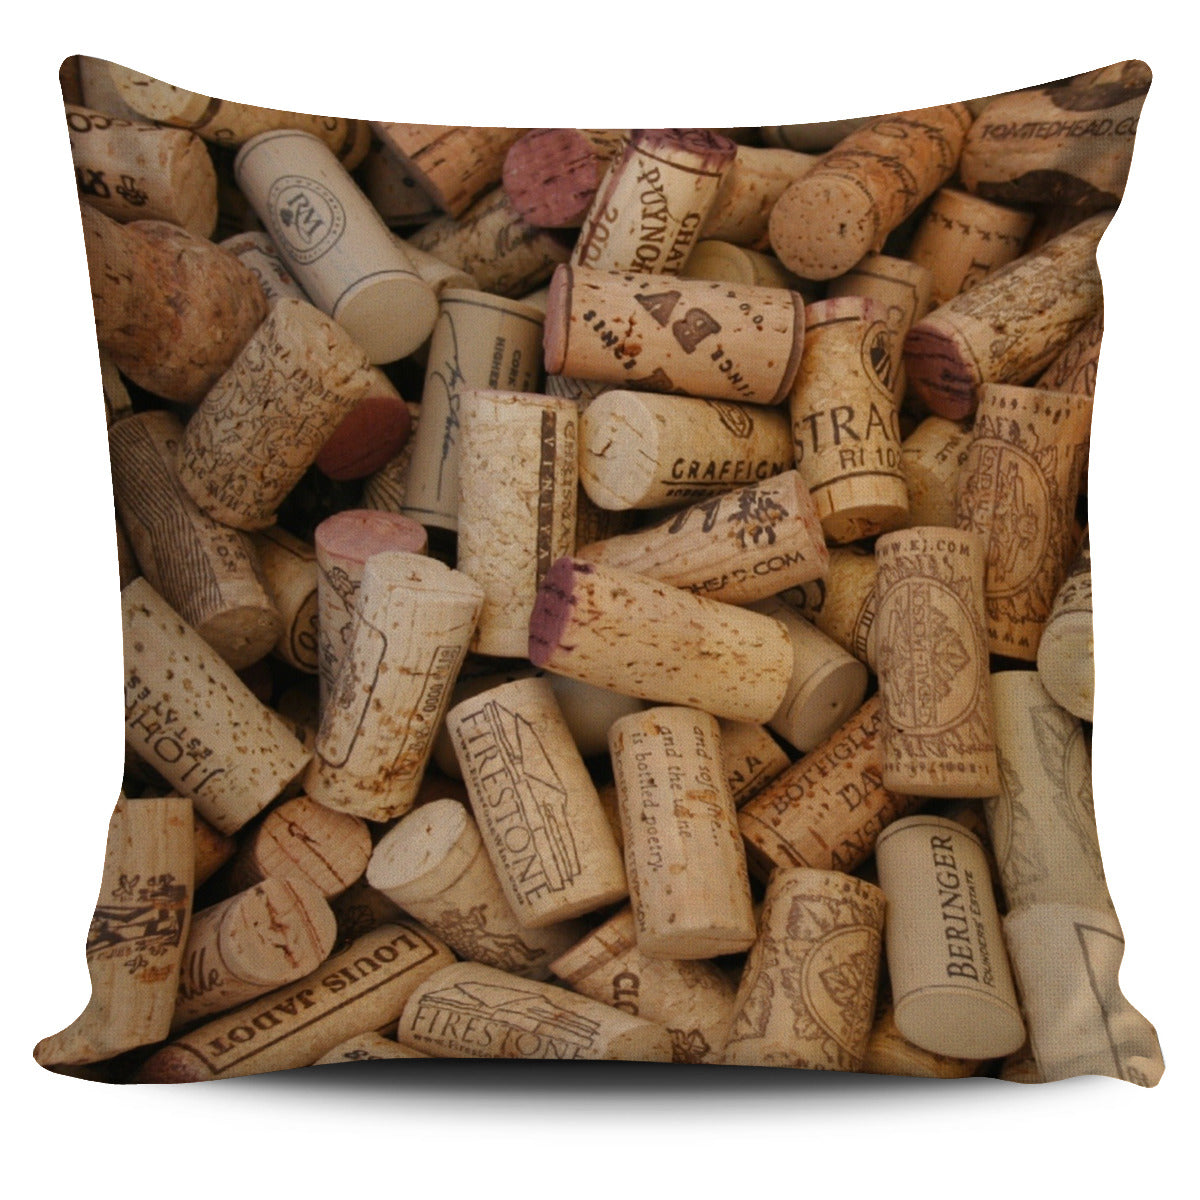 Wine Corks Pillow Cover